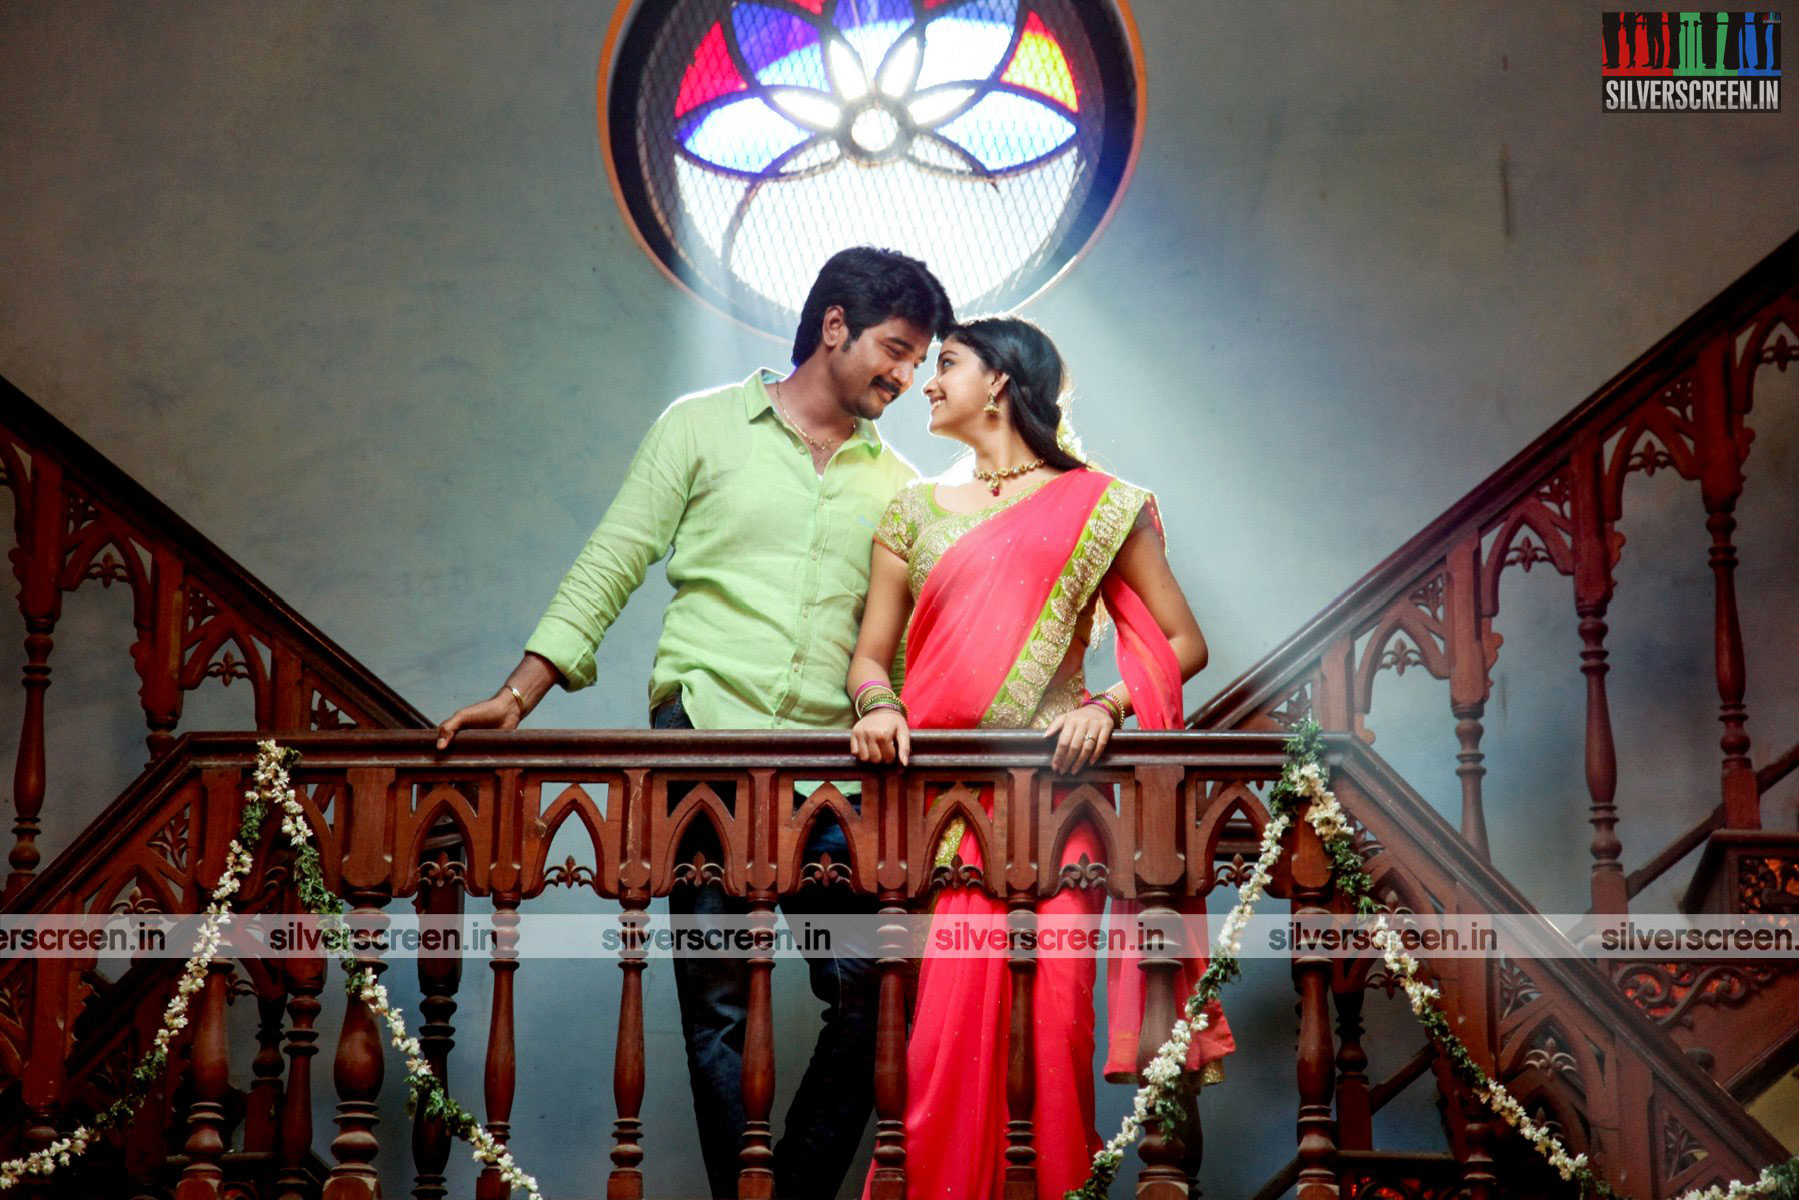 Reviews >> Rajini Murugan Movie Stills | Silverscreen.in